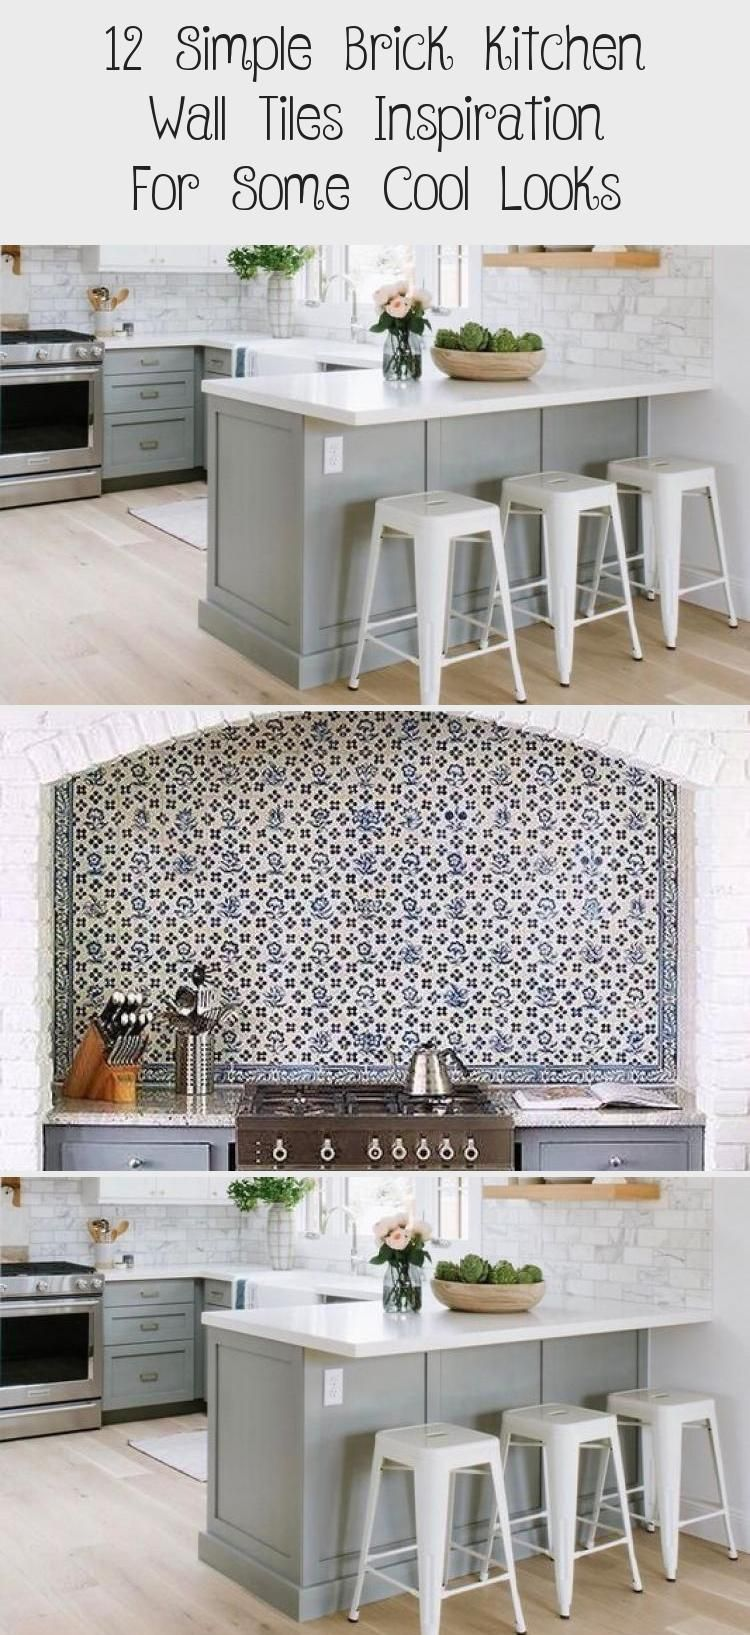 12 Simple Brick Kitchen Wall Tiles Inspiration For Some Cool Looks Ktchn In 2020 Brick Kitchen Kitchen Wall Tiles Kitchen Wall